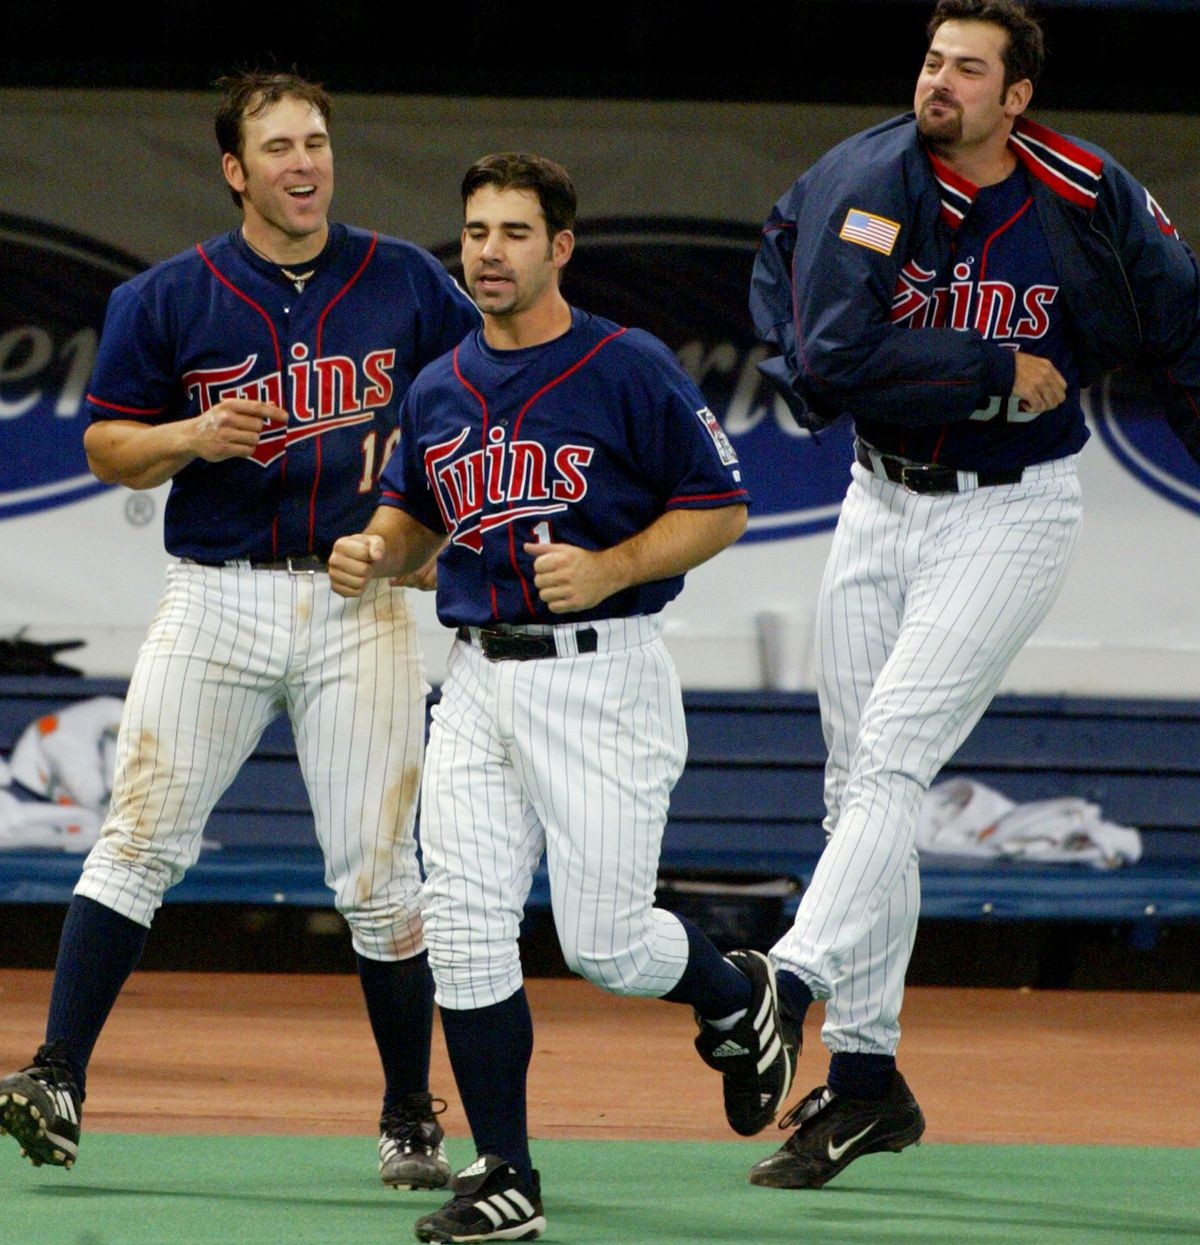 Minneapolis MN, 5/2/02 Twins vs. Devil Rays----Twins Doug Mientkiewicz 16 left, Jay Canizaro 1, and Tony Fiore celebrated Corey Koskie 10th inning home run against Tampa Bay giving a the Twins a 7-6 win.